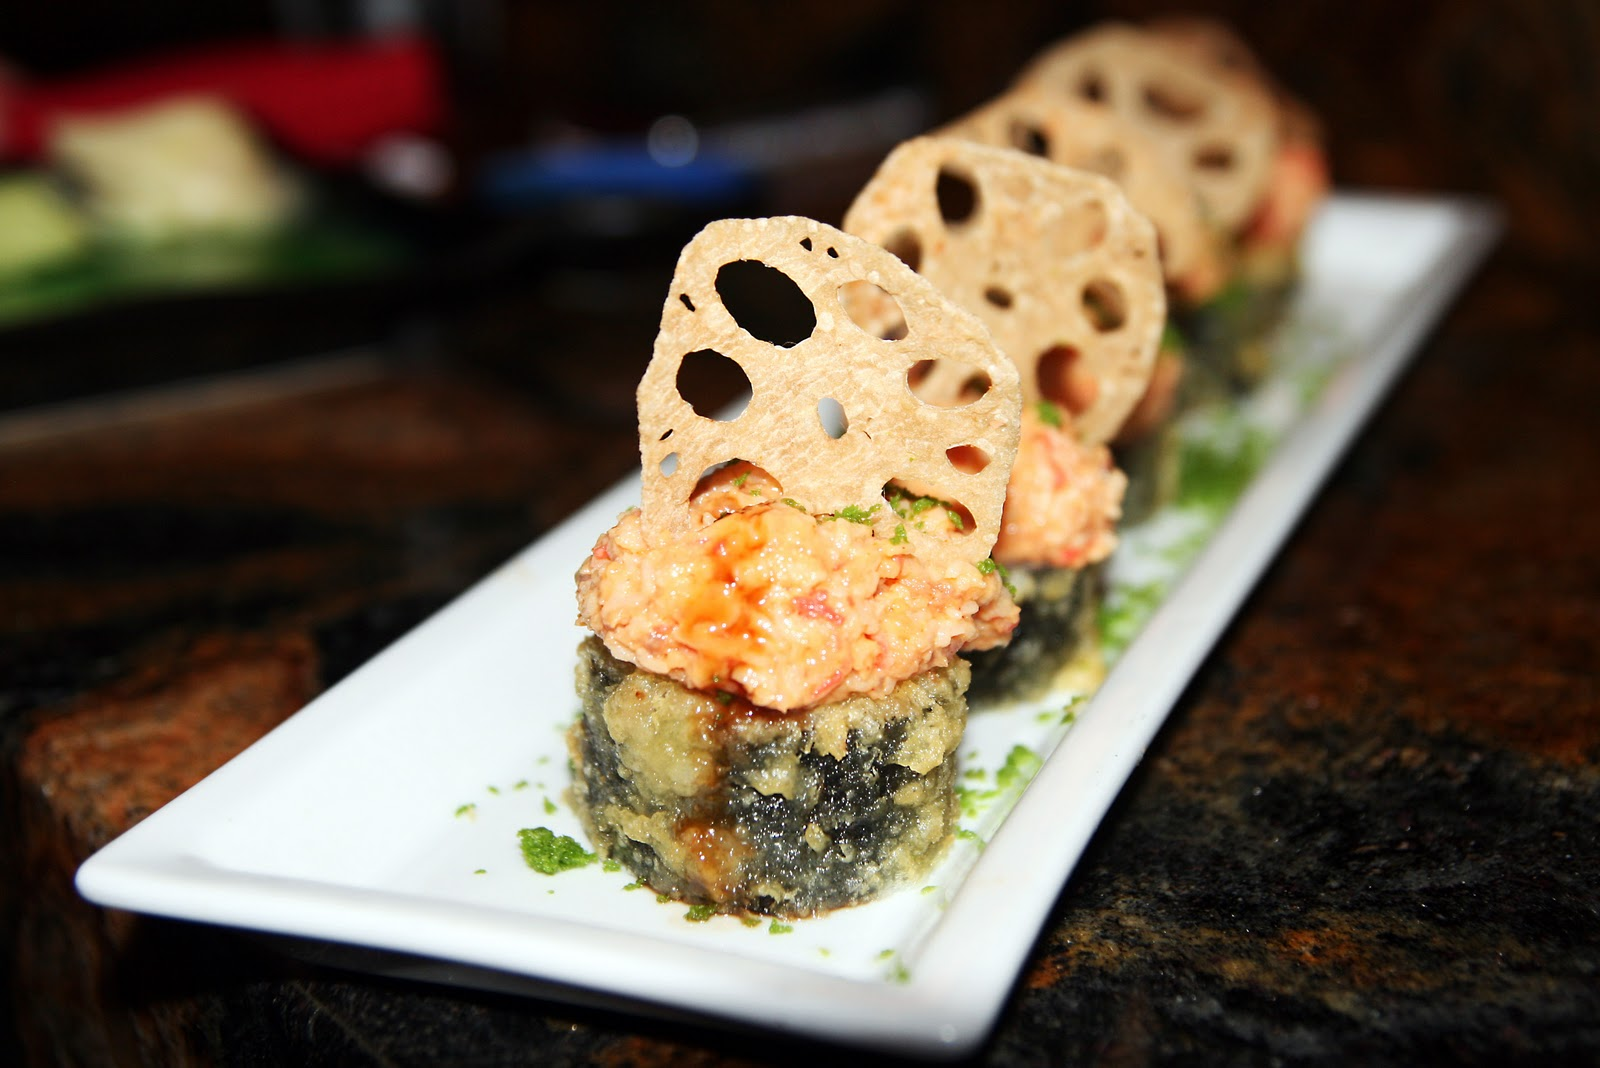 ra sushi s happy hour dallas tx a taste of koko austin s viva las vegas roll kani kama crab and cream cheese rolled in rice and seaweed lightly tempura battered and topped spicy tuna kani kama crab mix and